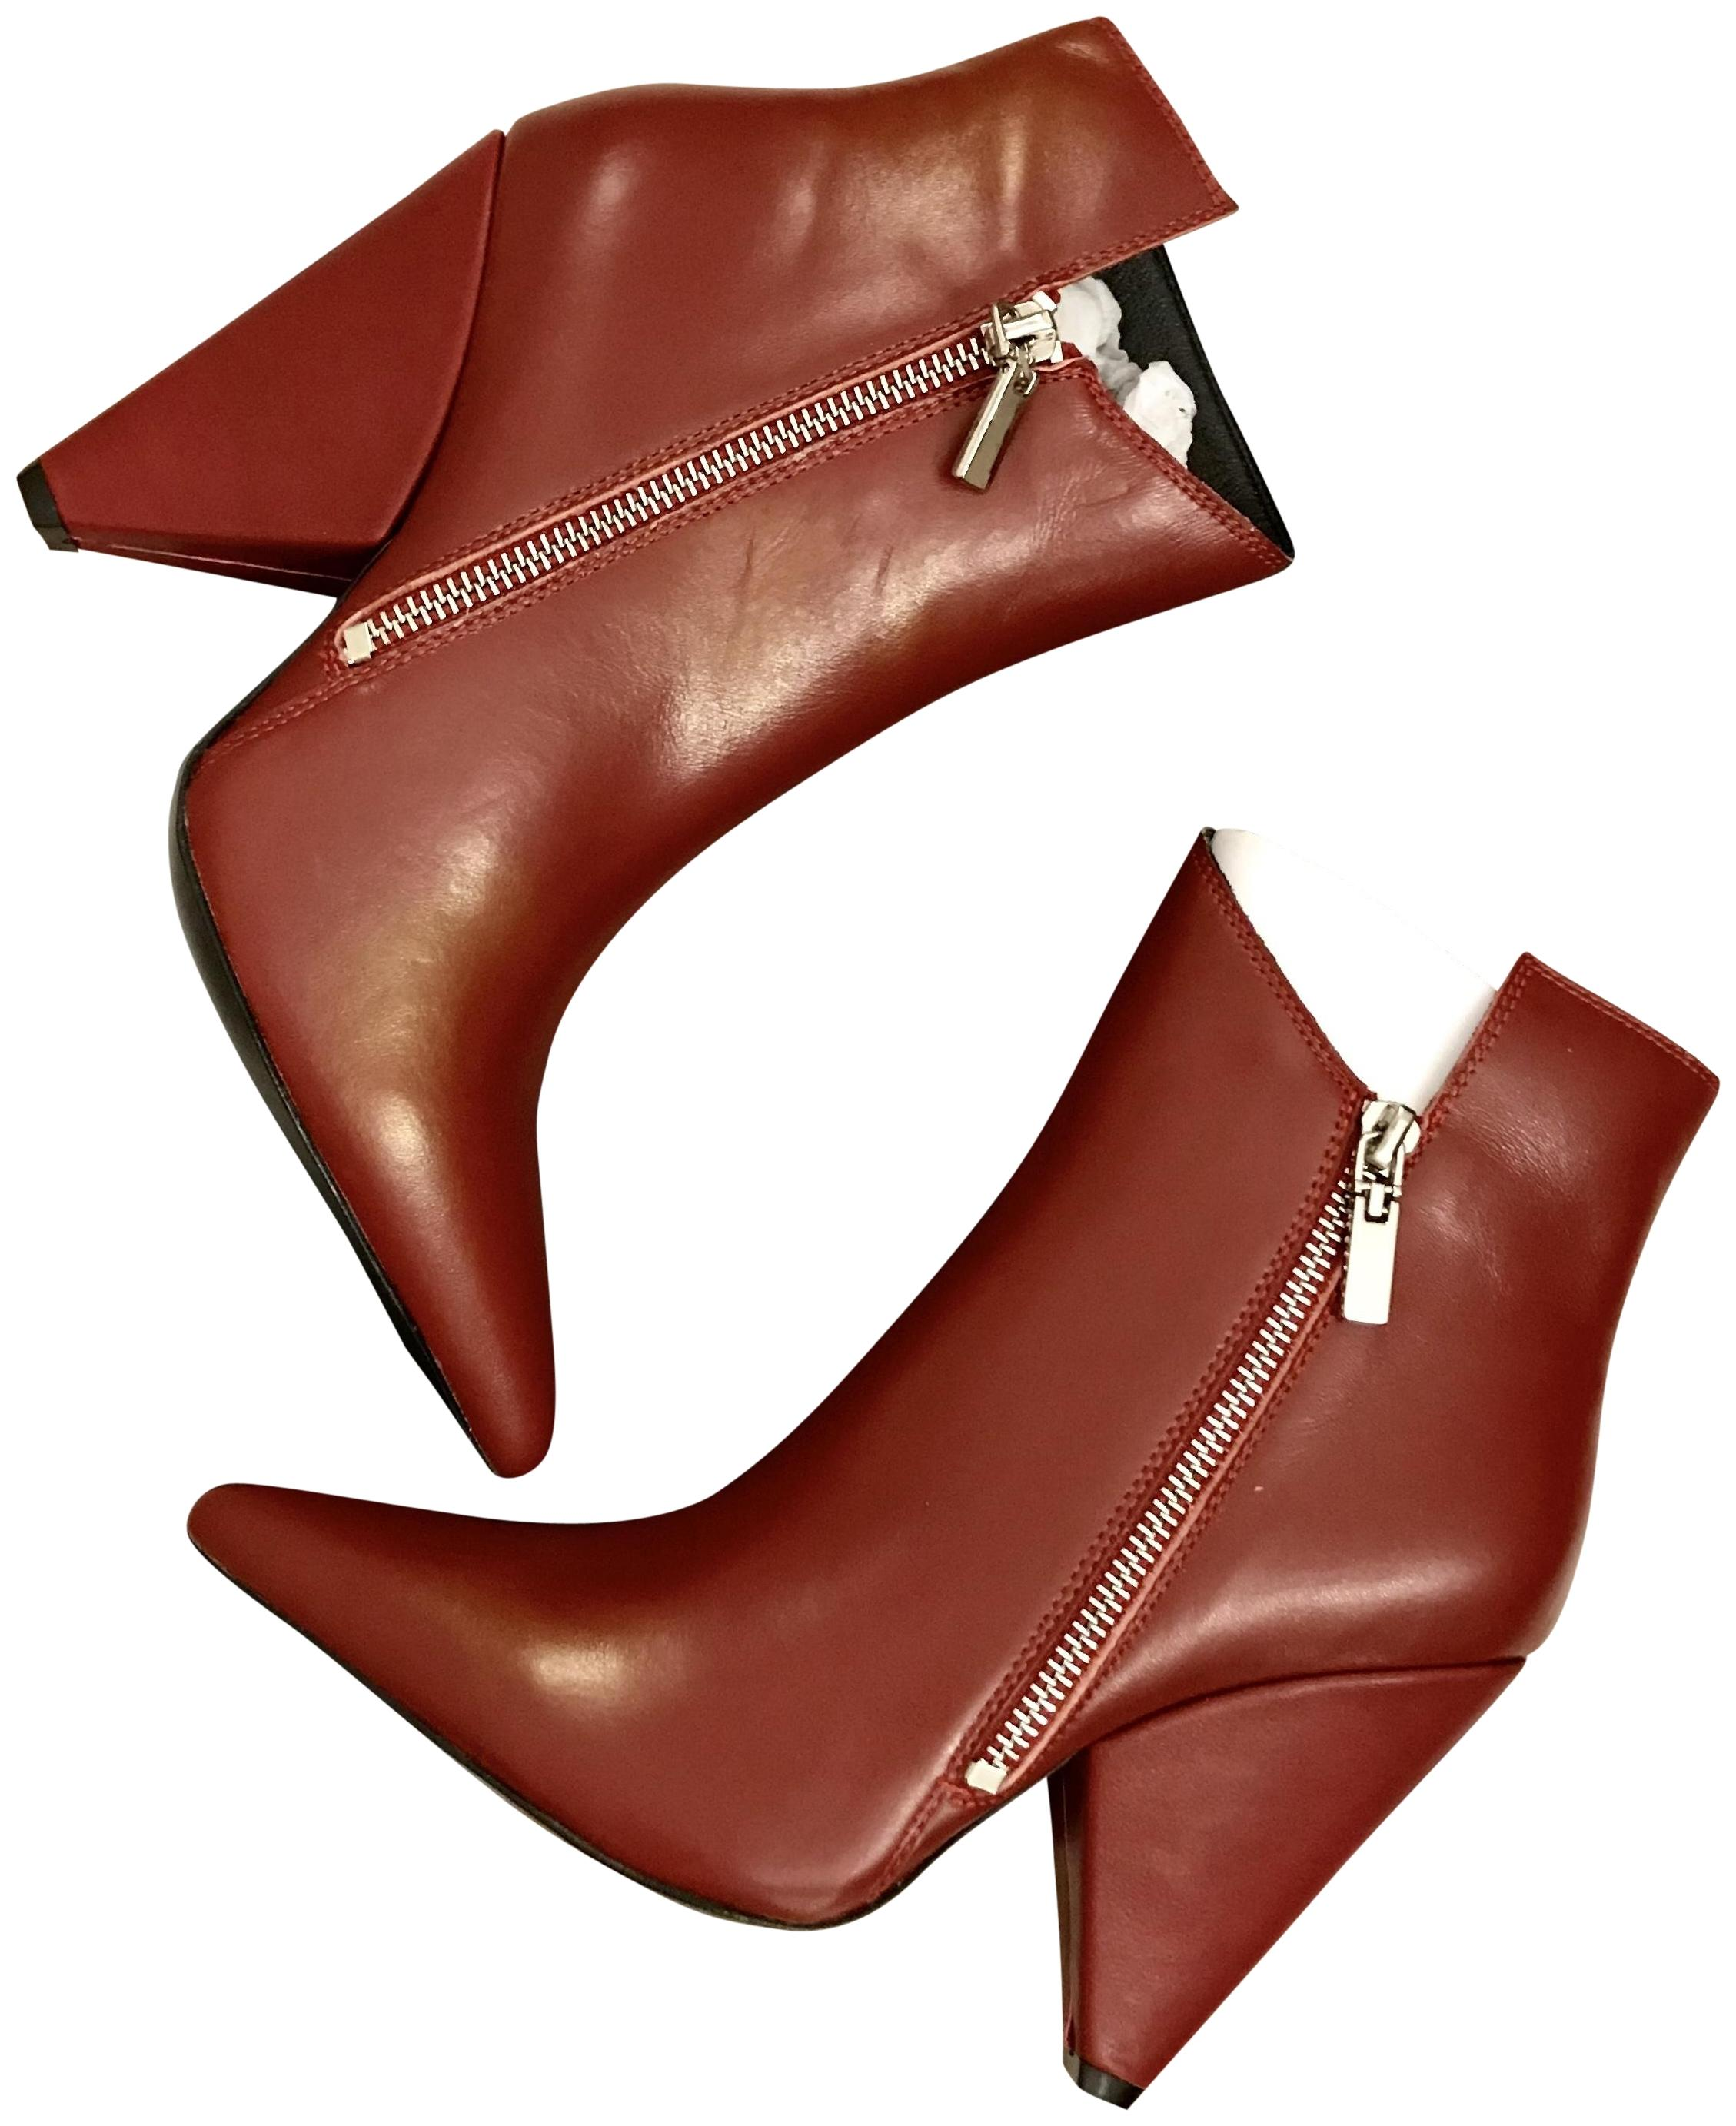 adf6840c4442 Saint Laurent Light Burgundy Burgundy Burgundy Niki 105 Asymmetrical Ankle  In Leather Boots Booties Size EU 36 (Approx. US 6) Regular (M